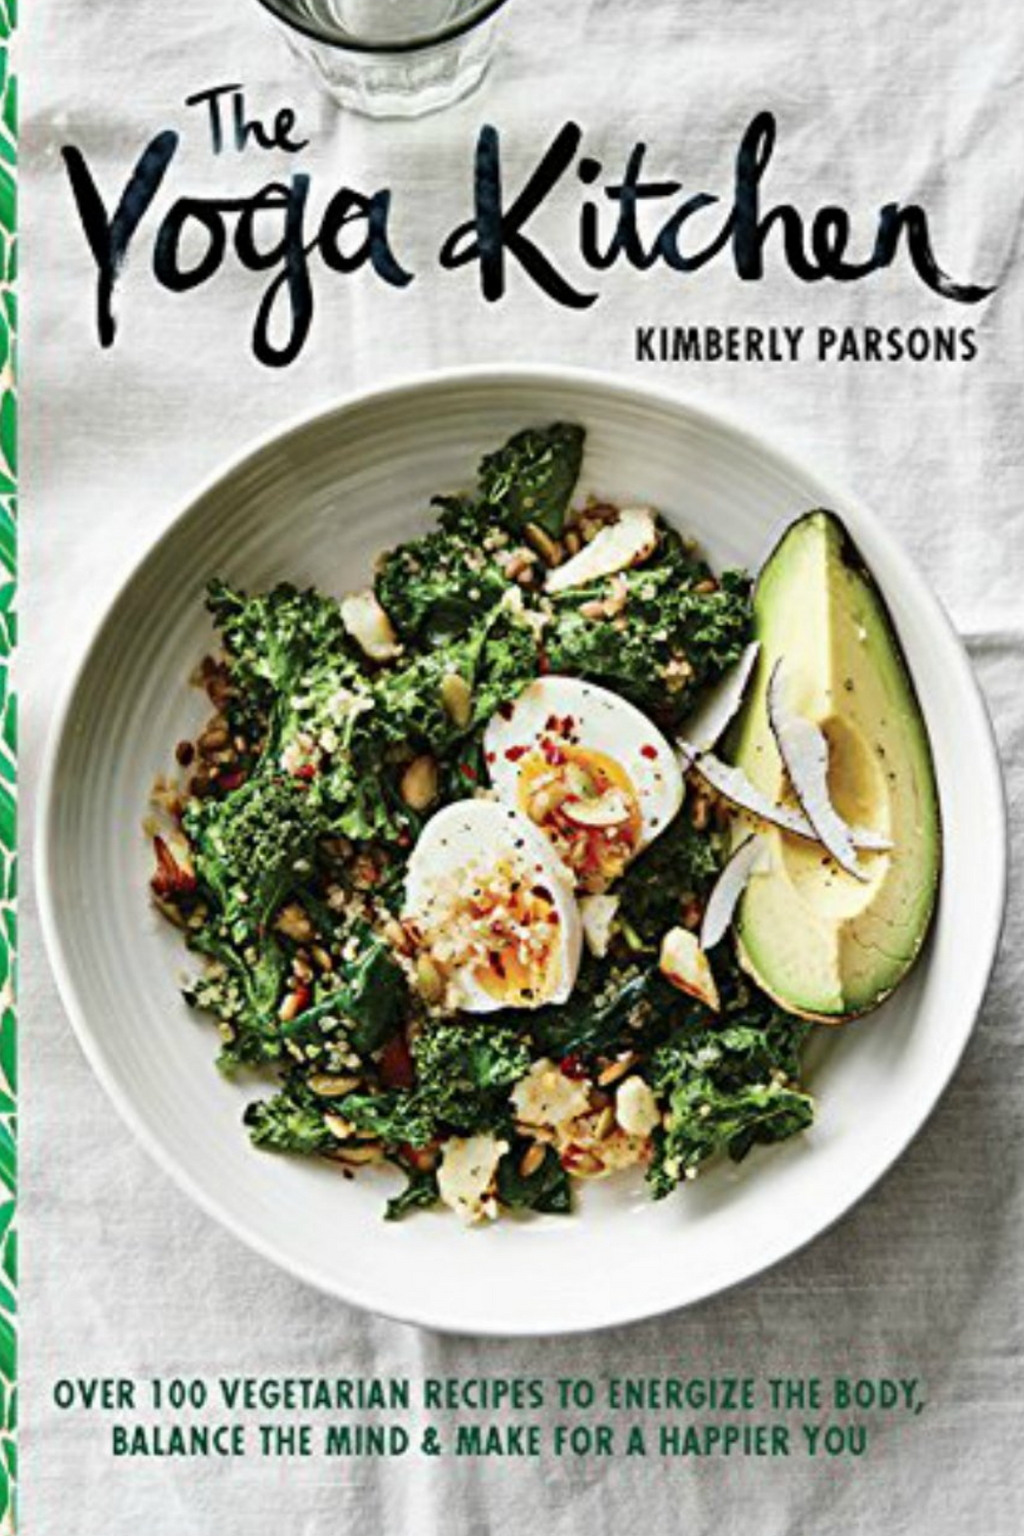 The Yoga Kitchen: Over 100 Vegetarian Recipes to Energize the Body, Balance the Mind & Make for a Happier You  By Kimberly Parsons